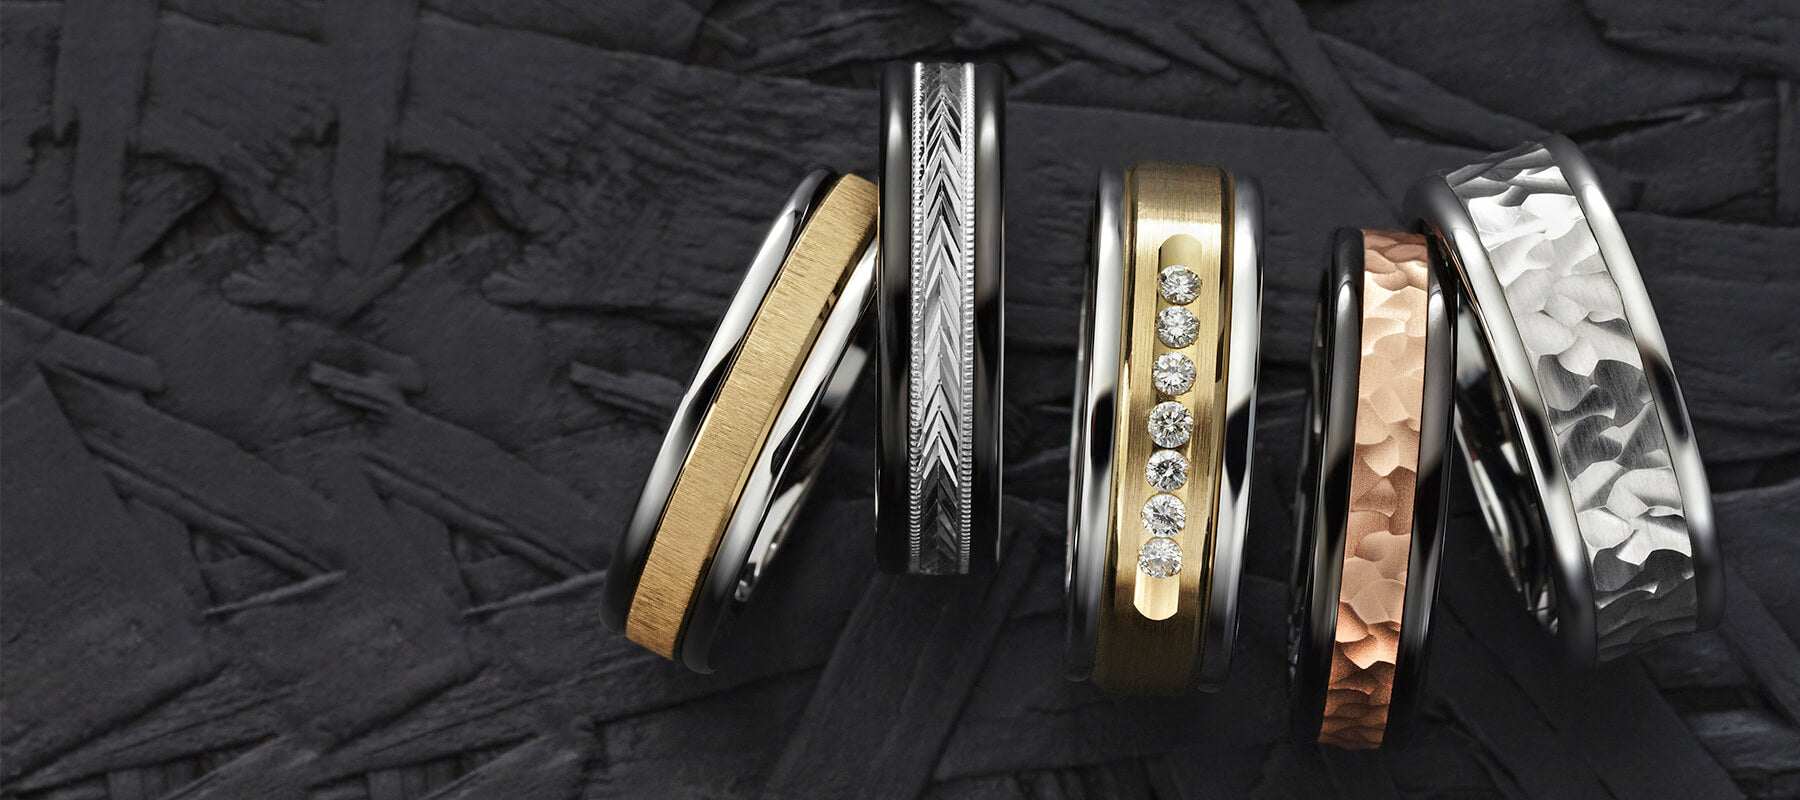 triton jewelry wedding bands gold tungsten yellow gold diamonds white gold rose gold